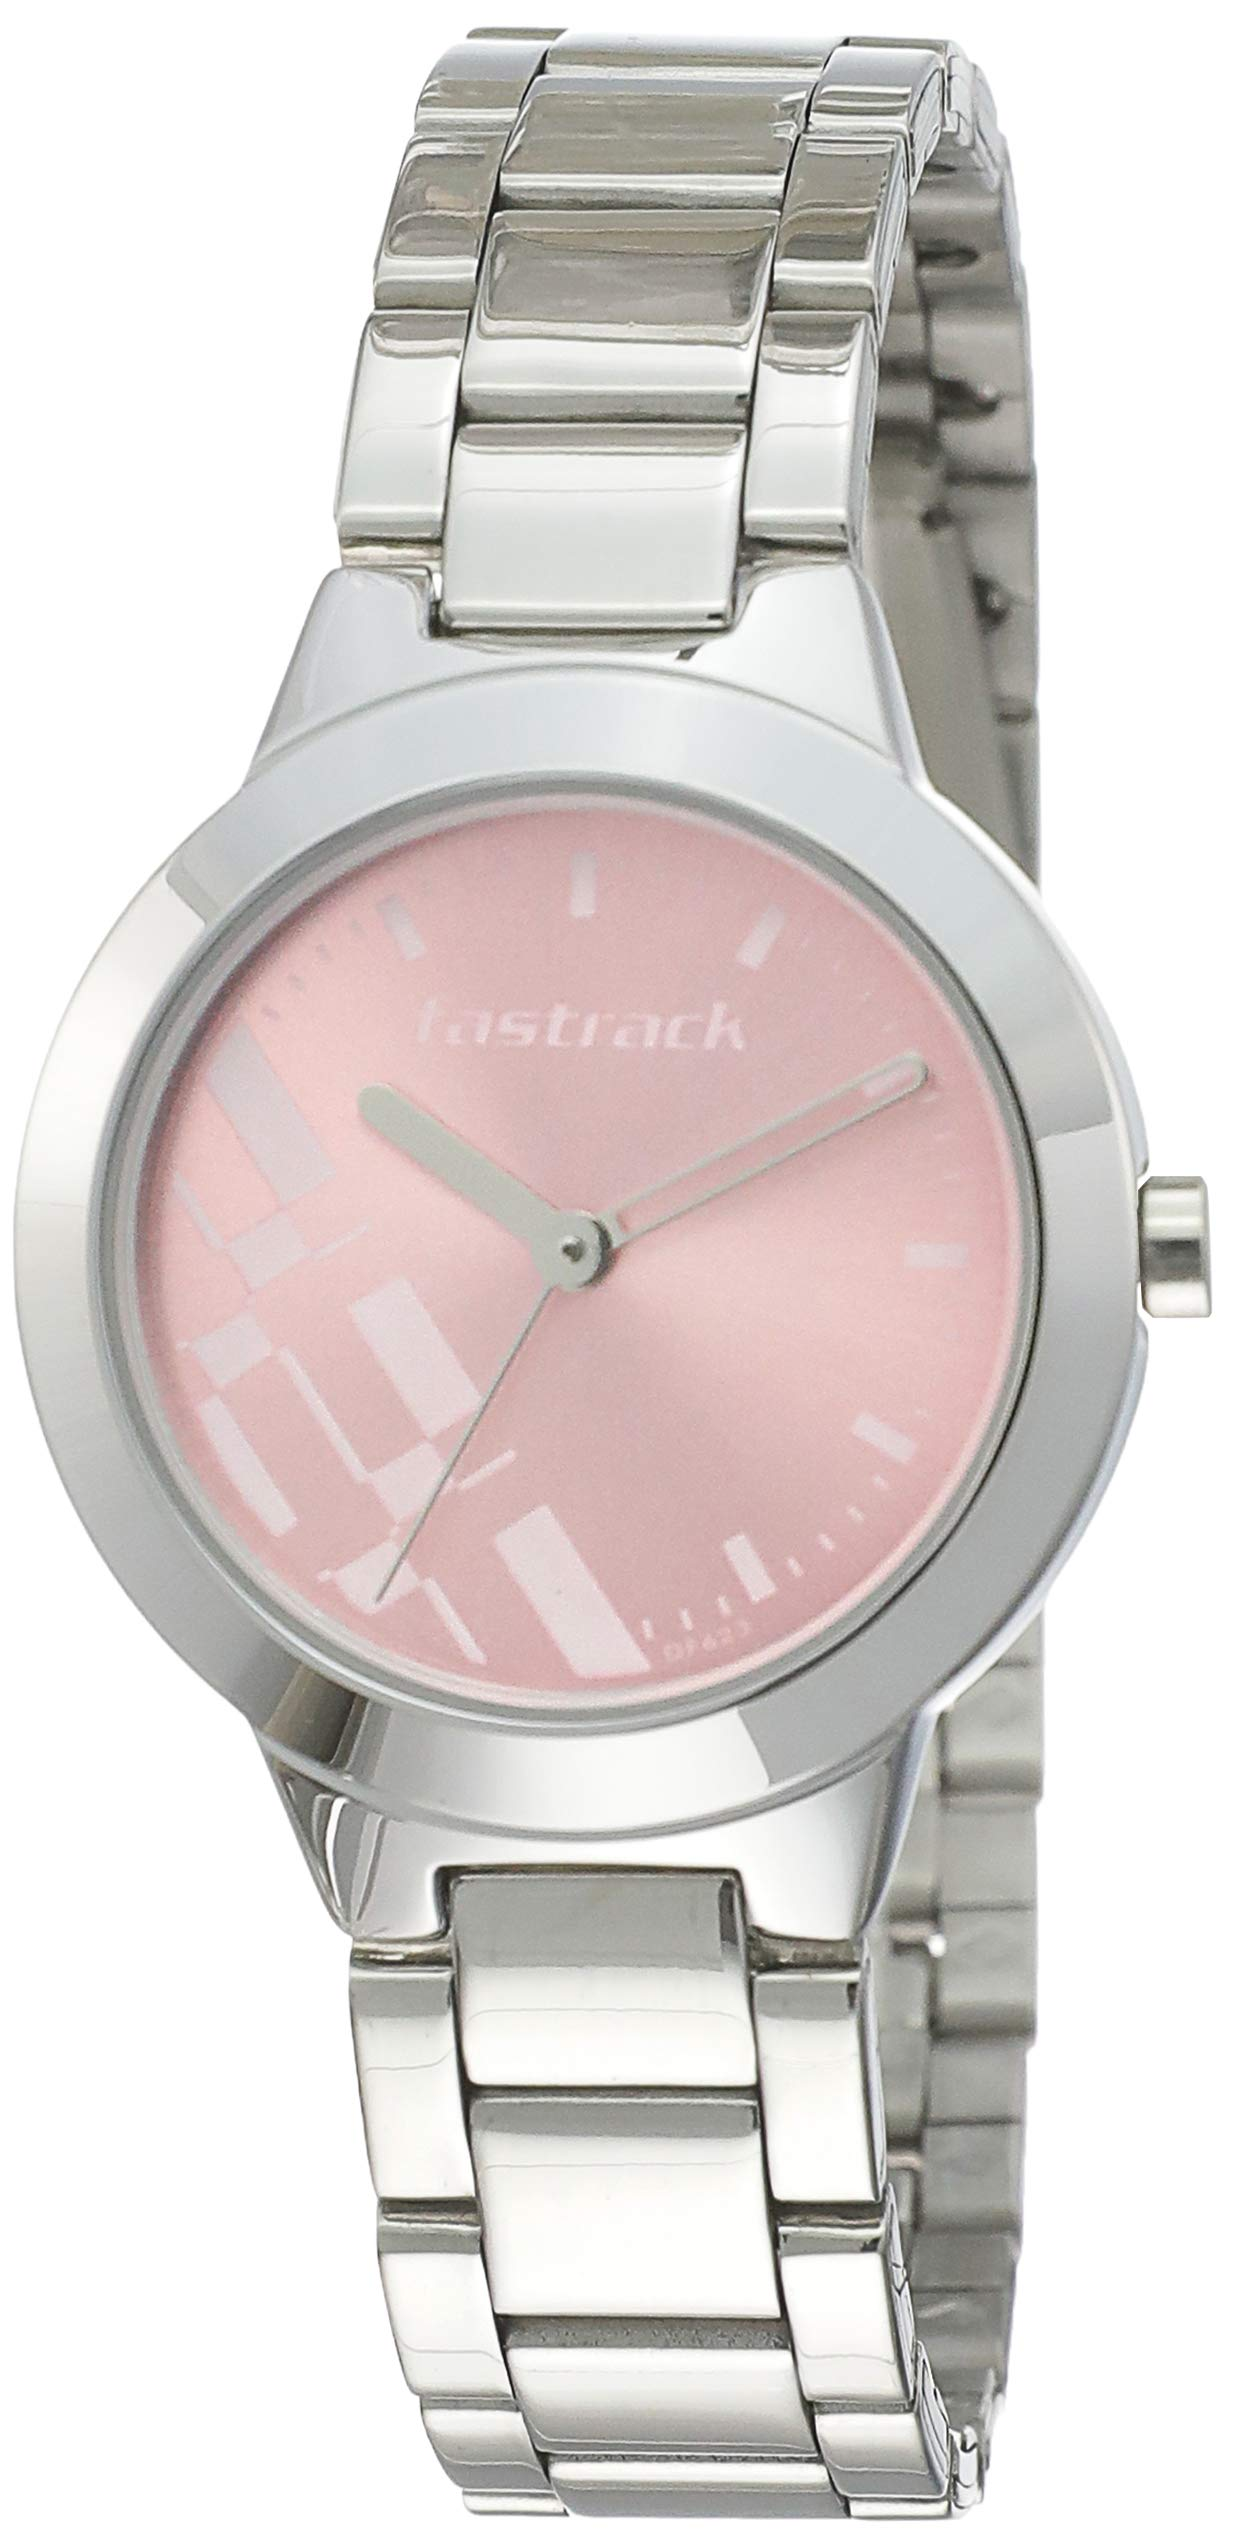 Fastrack Analog Dial Women's Watch (Pink, 6150SM04)-NK6150SM04 product image